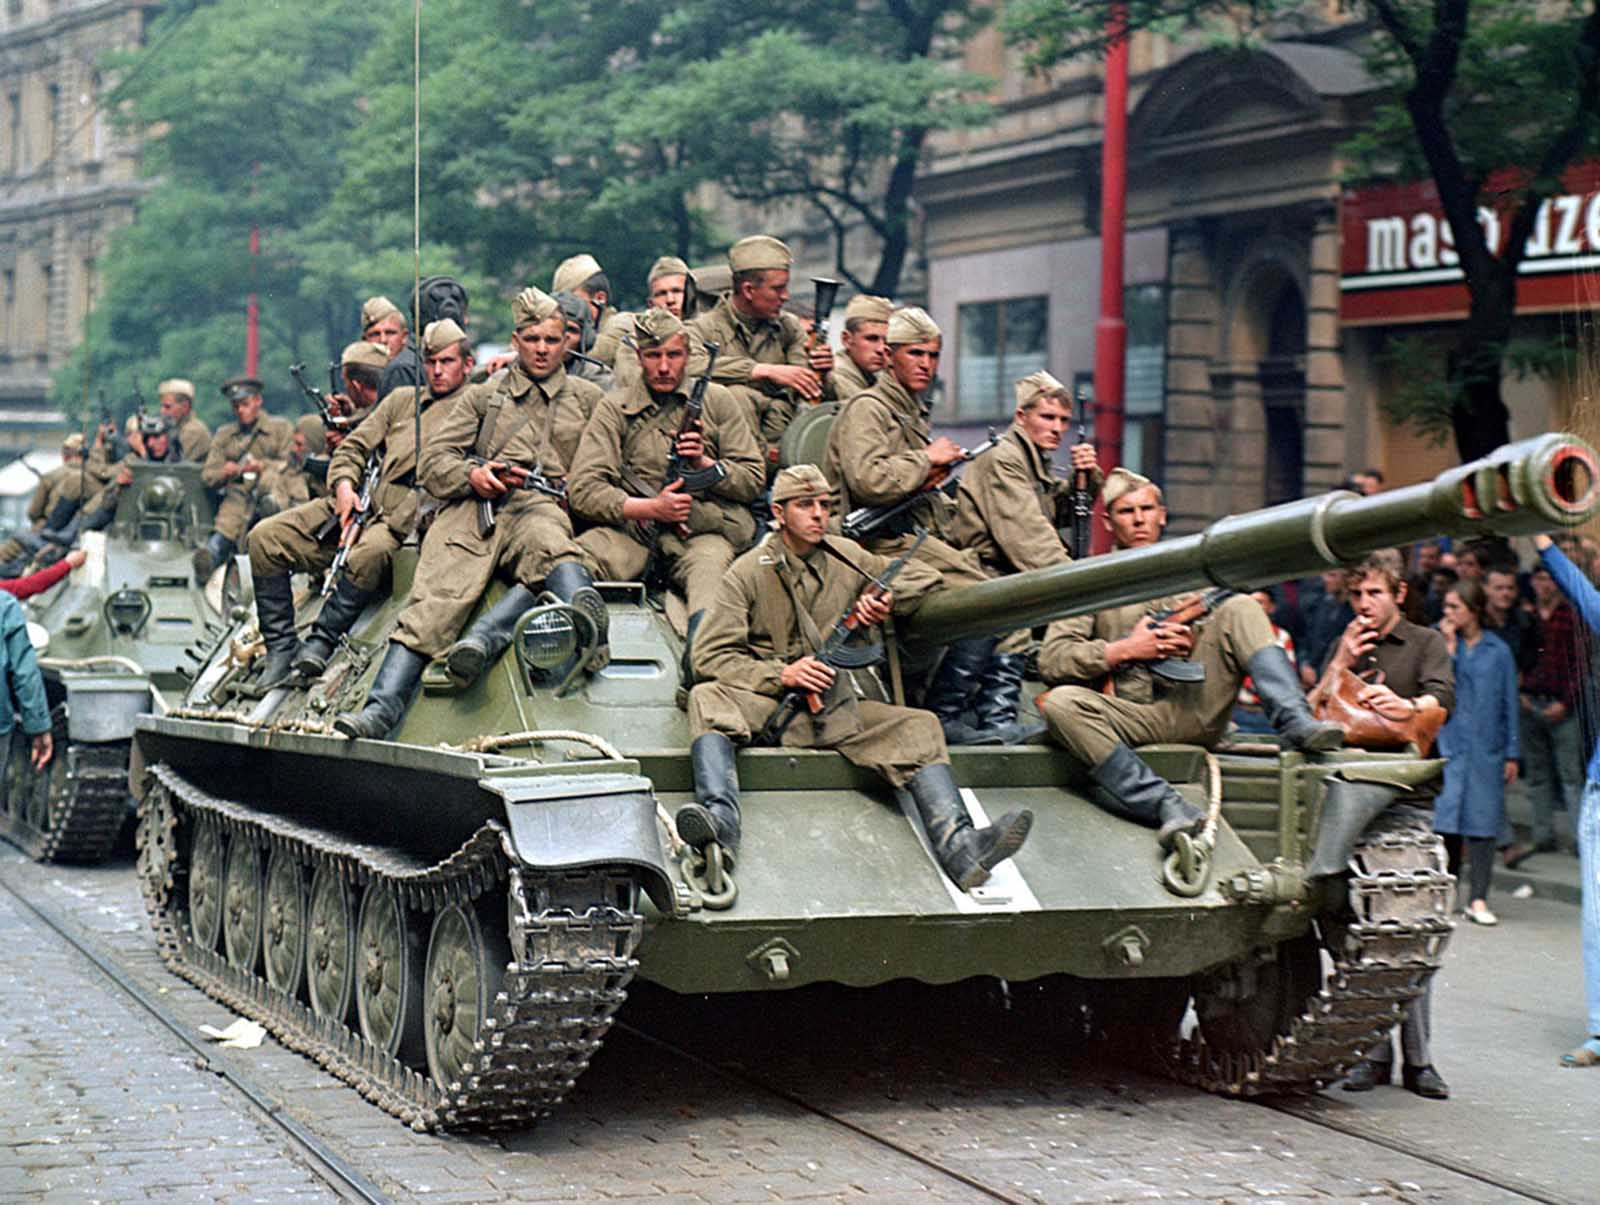 Soviet army soldiers sit on their tanks in front of the Czechoslovak Radio building, in central Prague, on August 21, 1968.